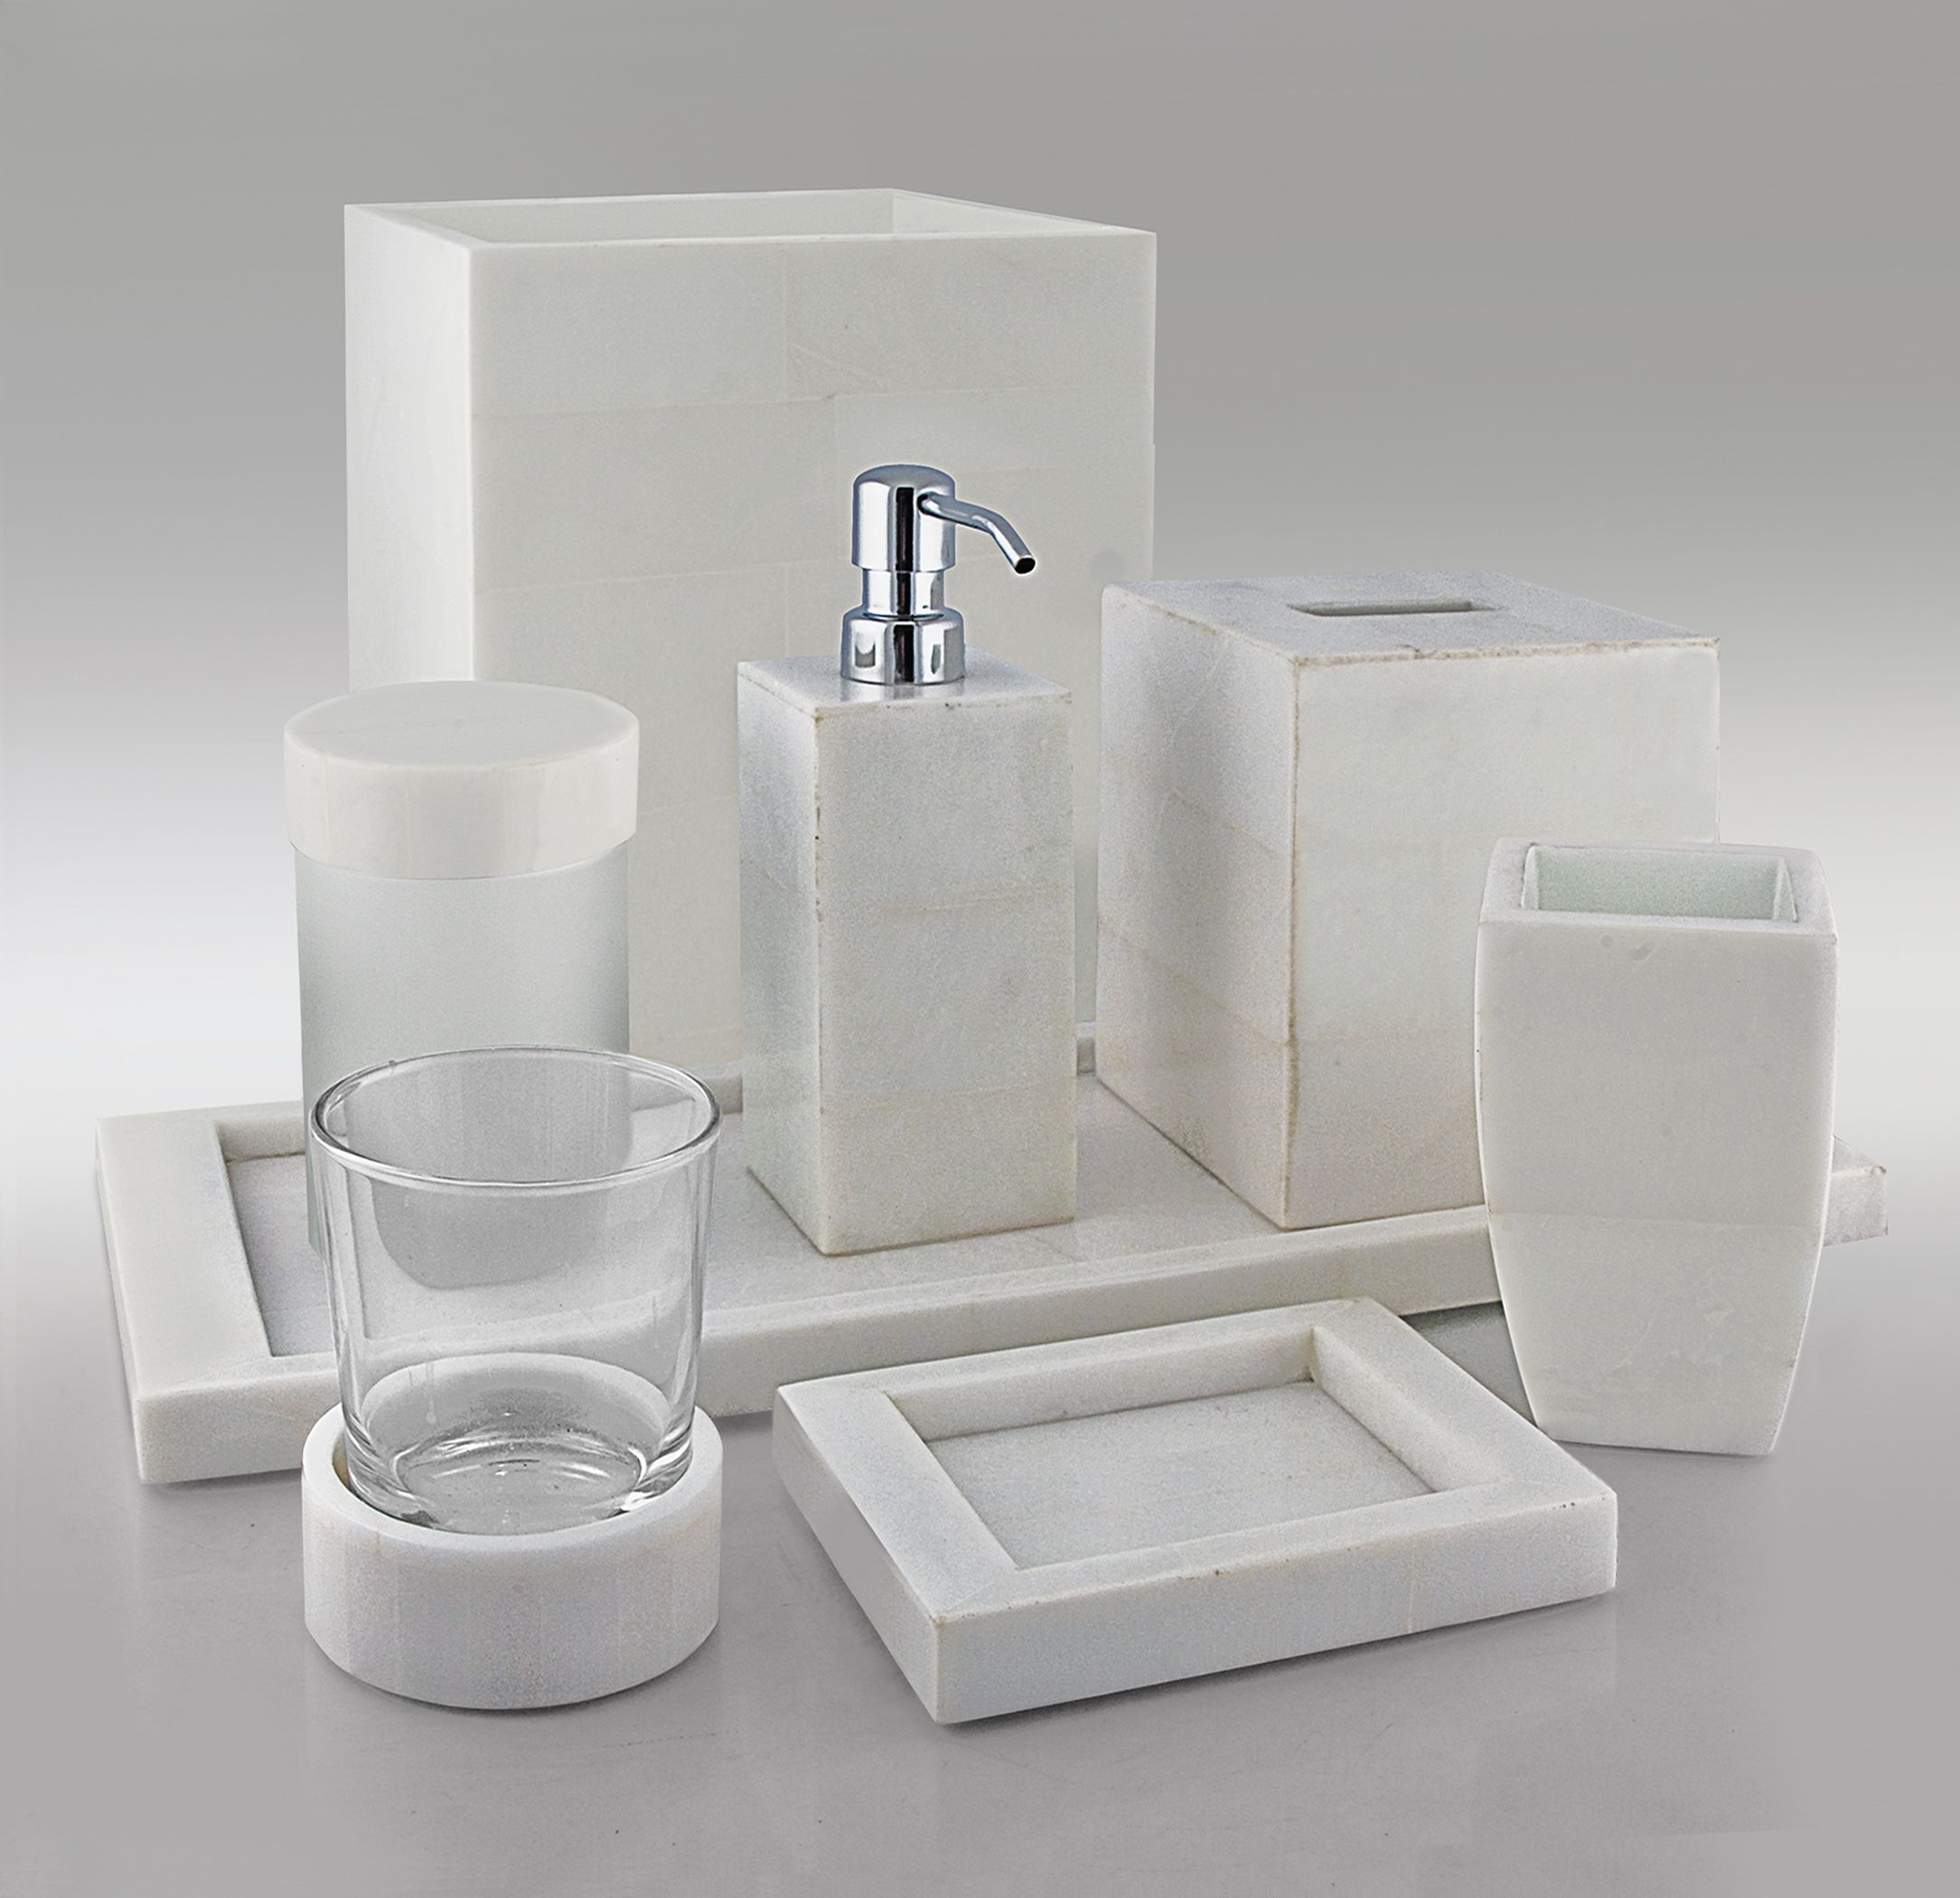 Mercury glass bathroom accessories - White Stone Bath Accessories By Gail Deloach